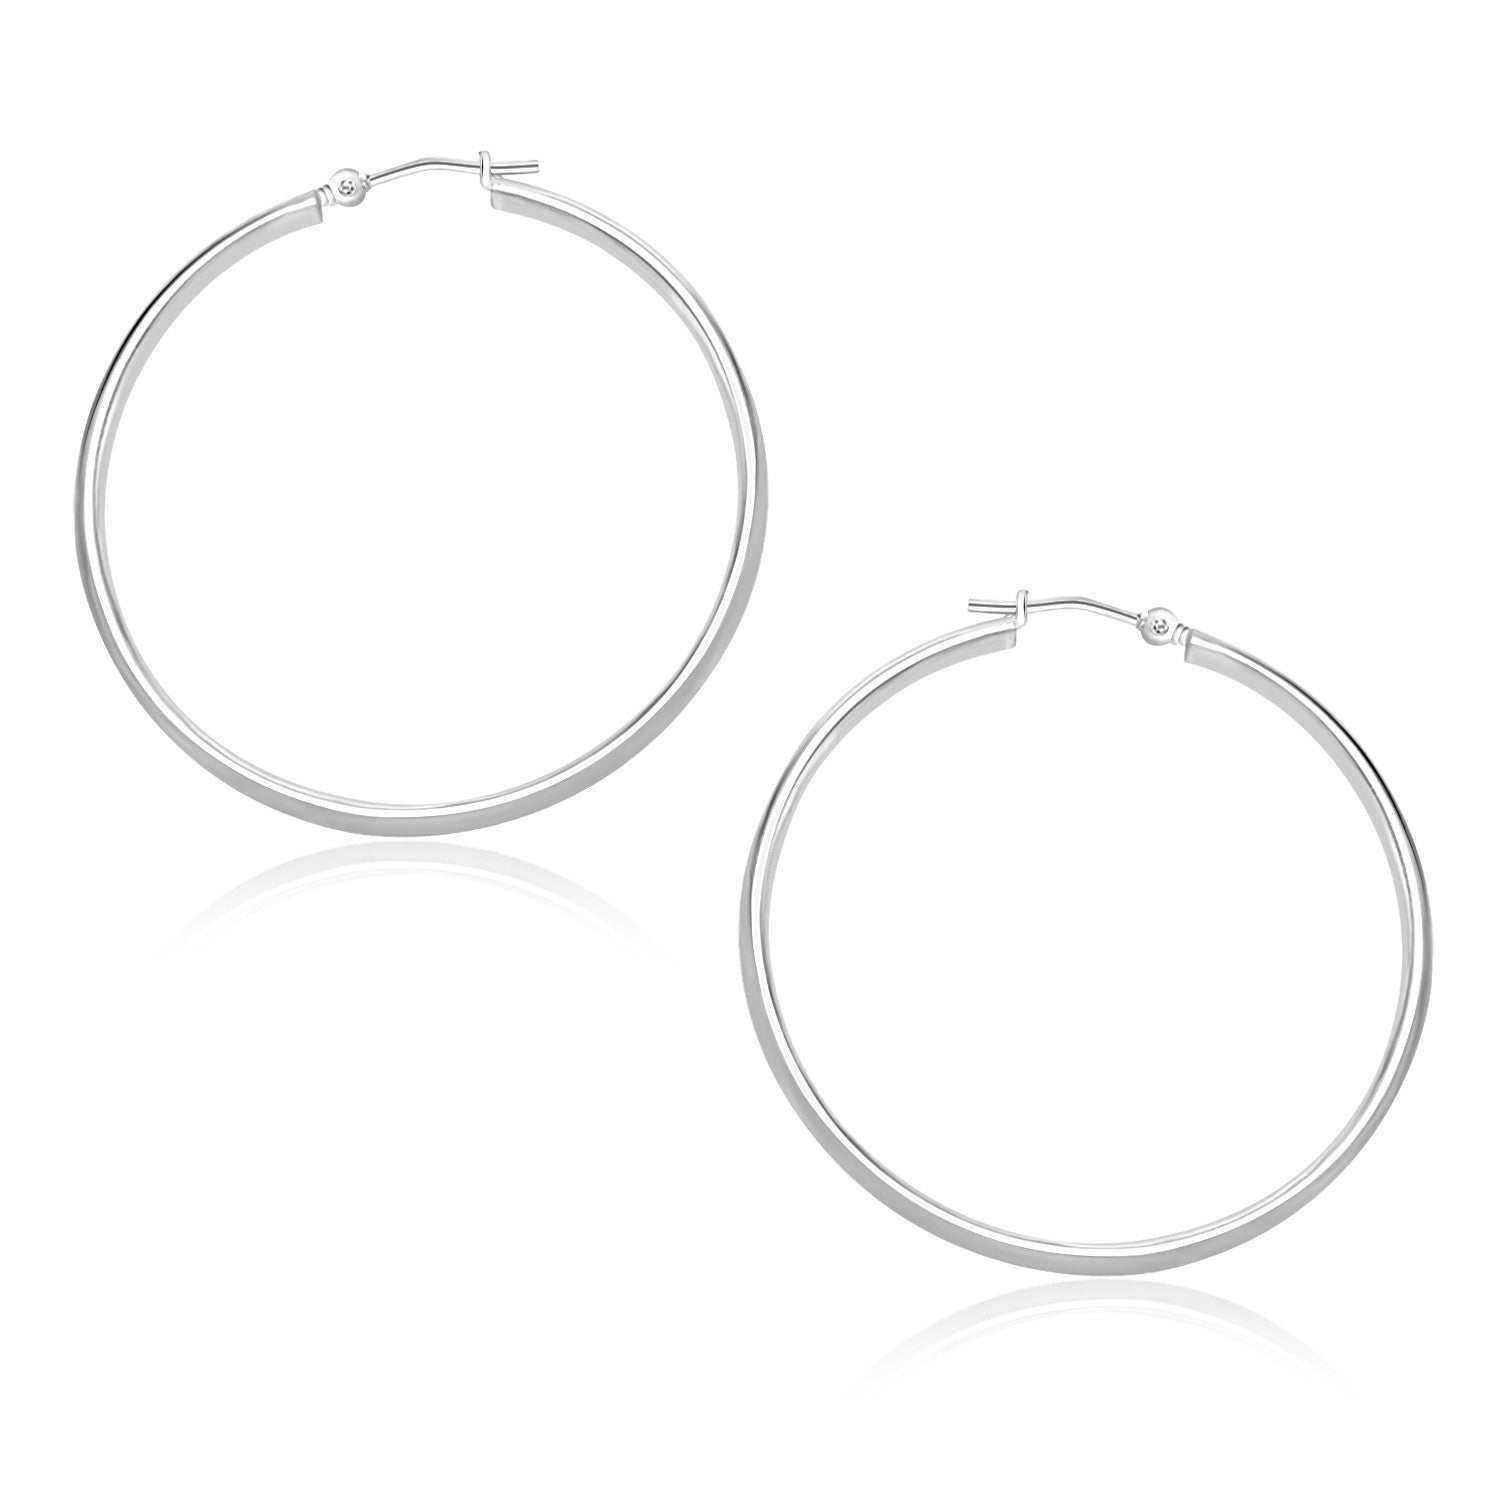 14K White Gold Polished Hoop Earrings (30mm)